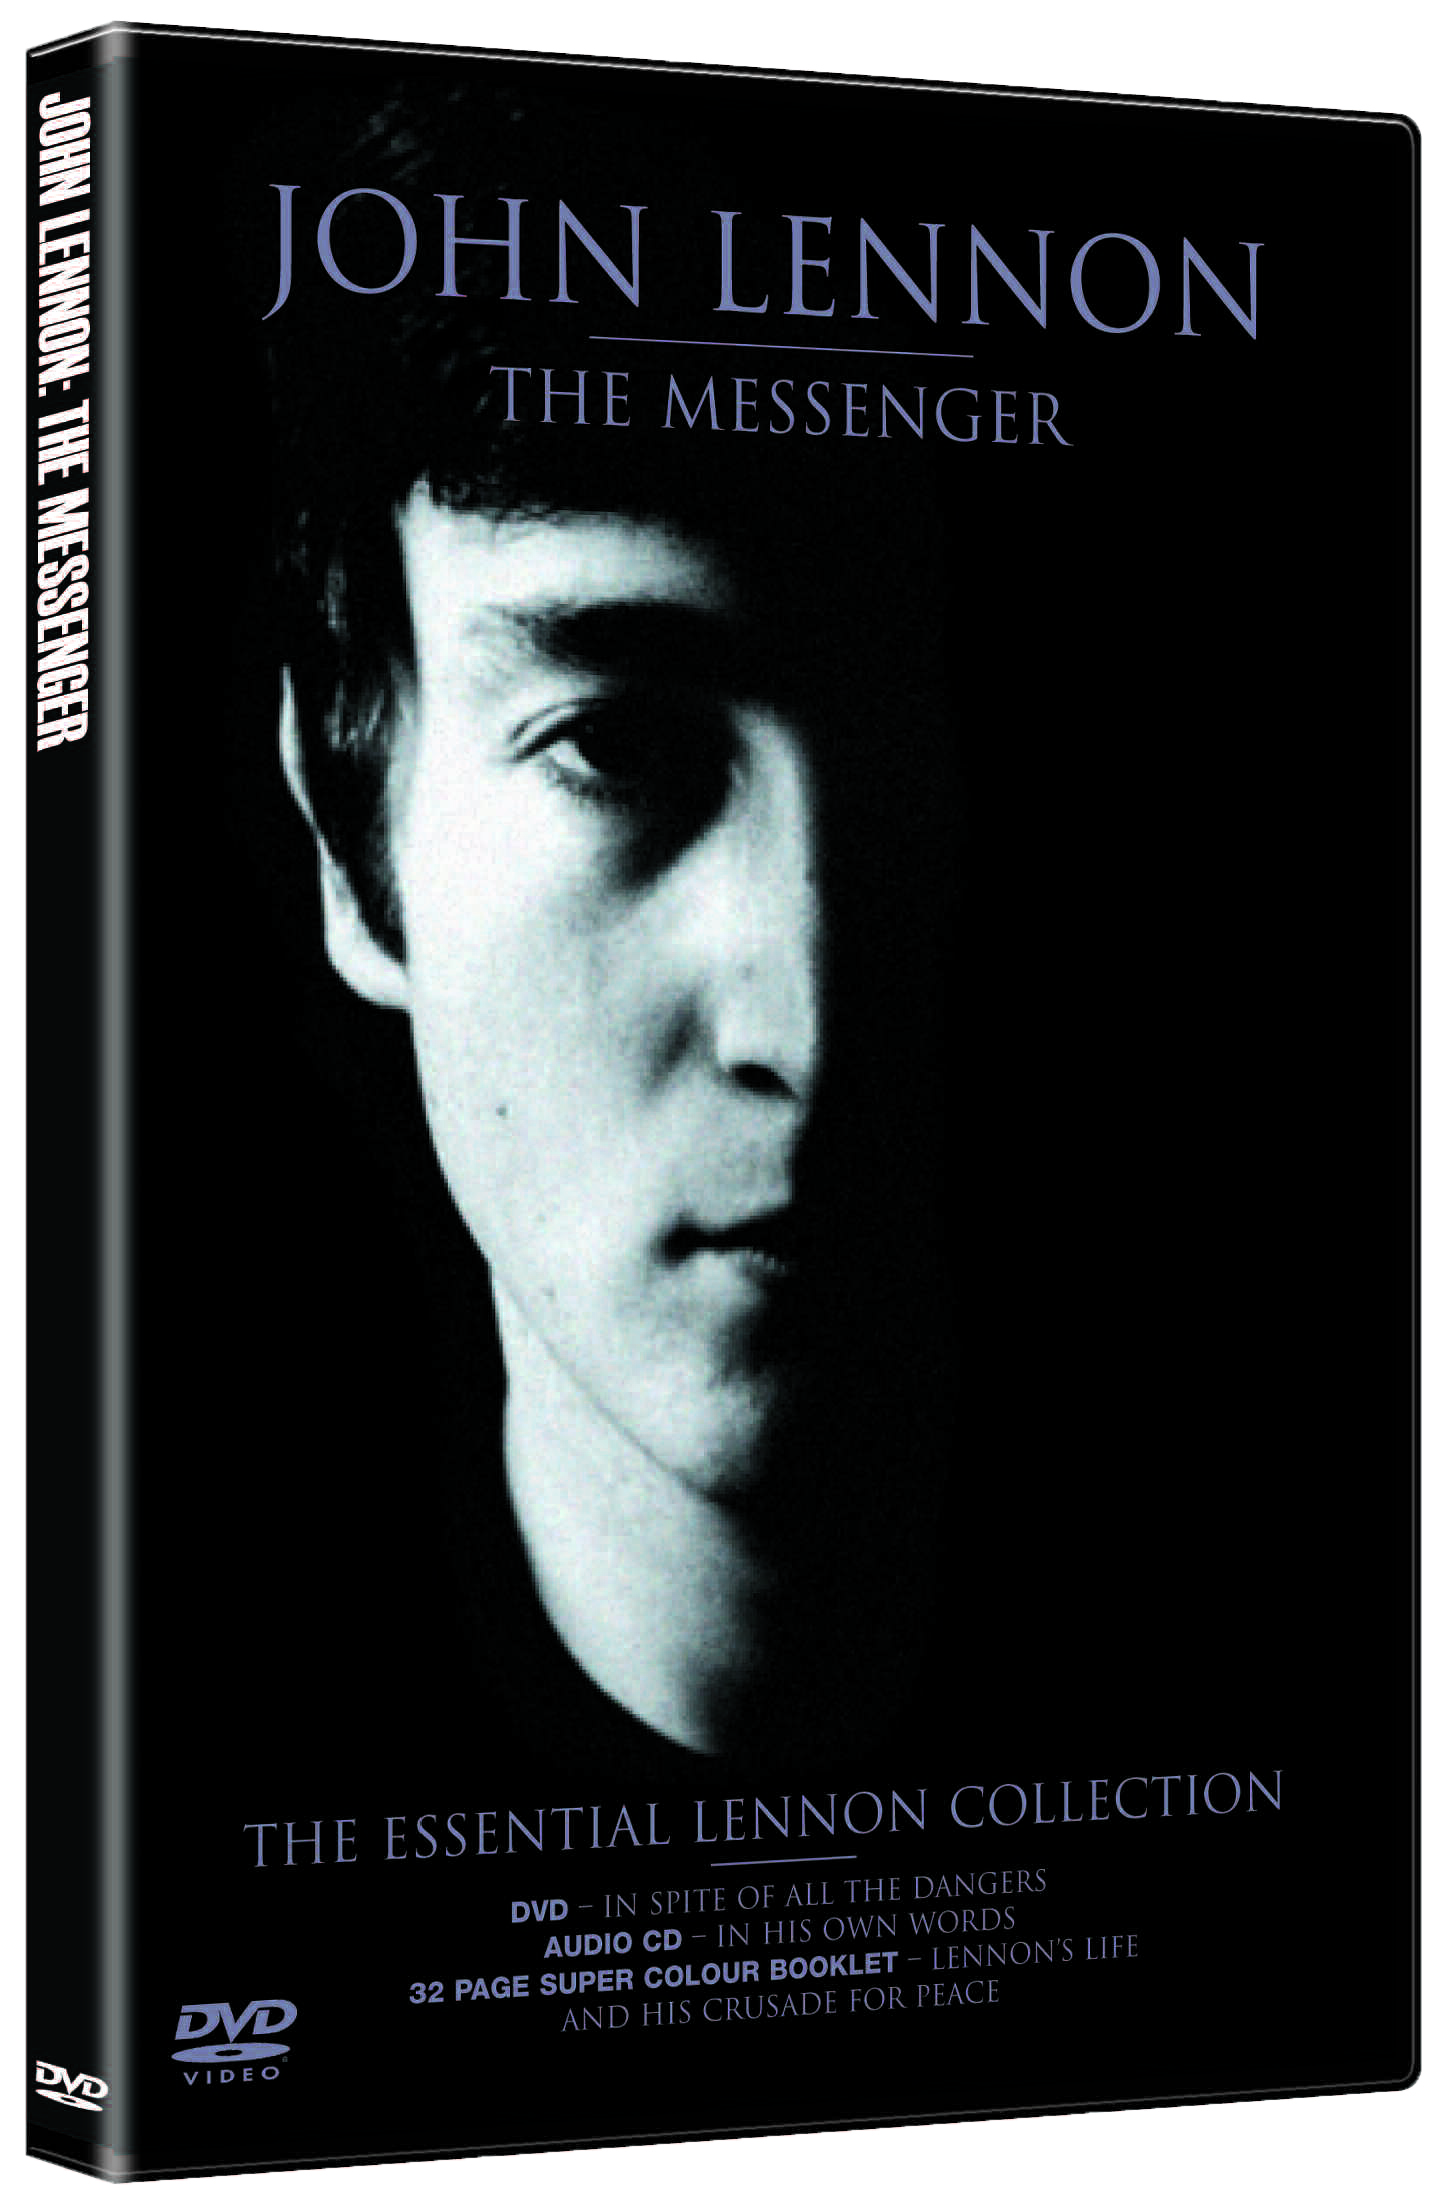 BEATLES: JOHN LENNON, THE MESSENGER